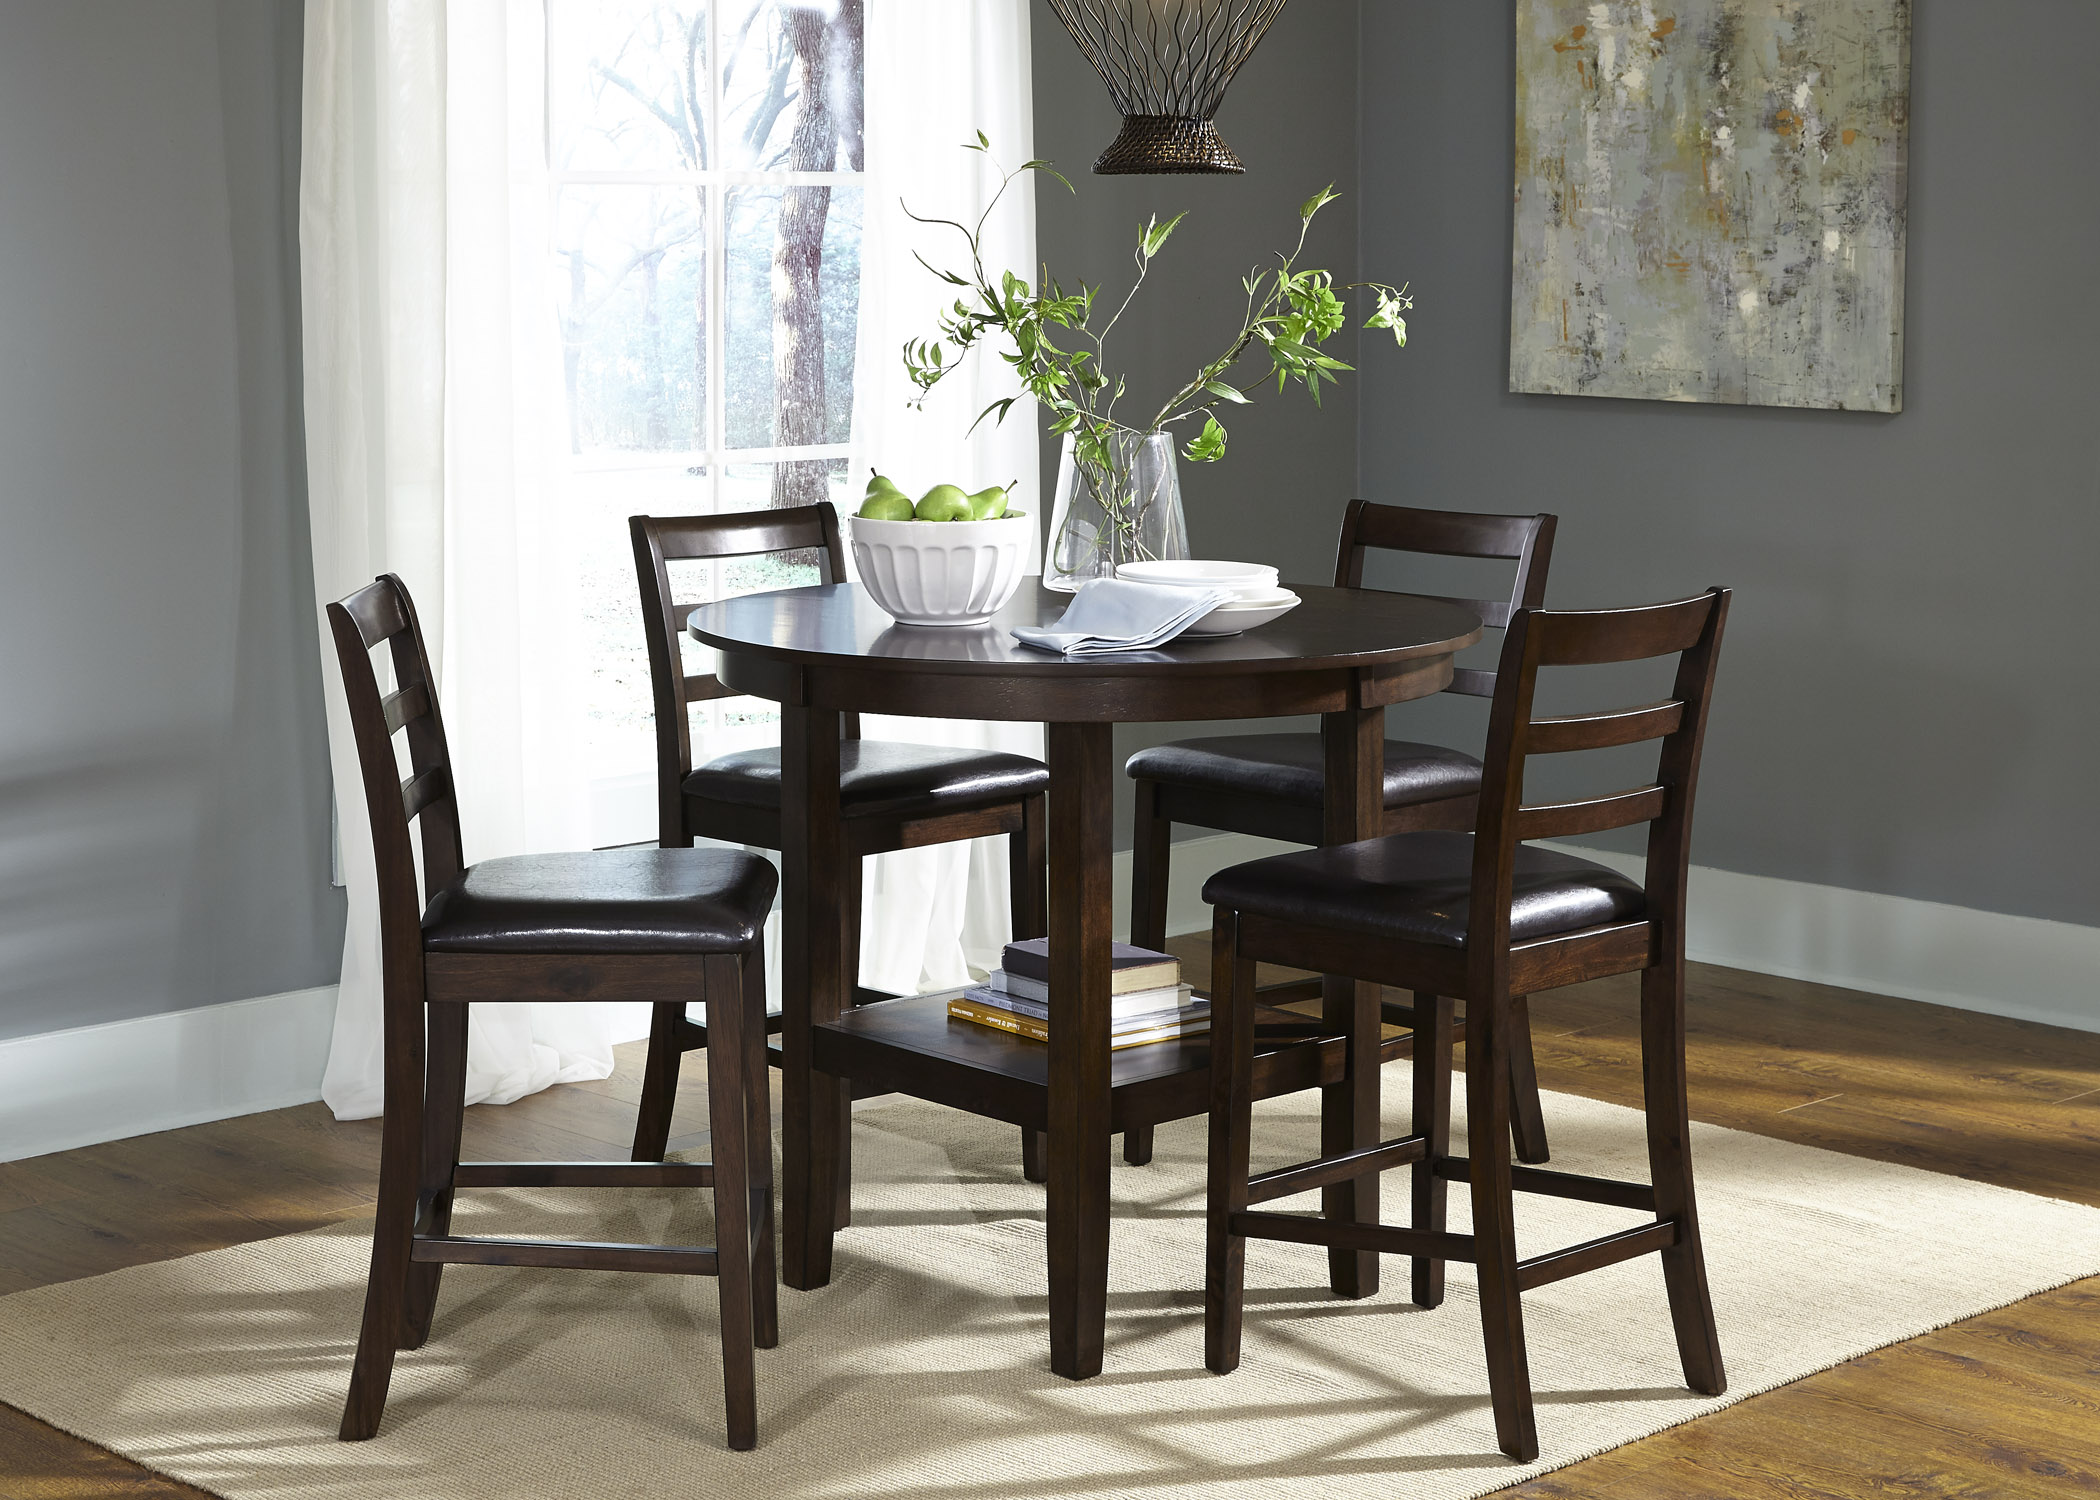 Liberty Furniture Bradshaw Casual Dining 5 Piece Pub Table Set - Item Number: 32-CD-5PUB